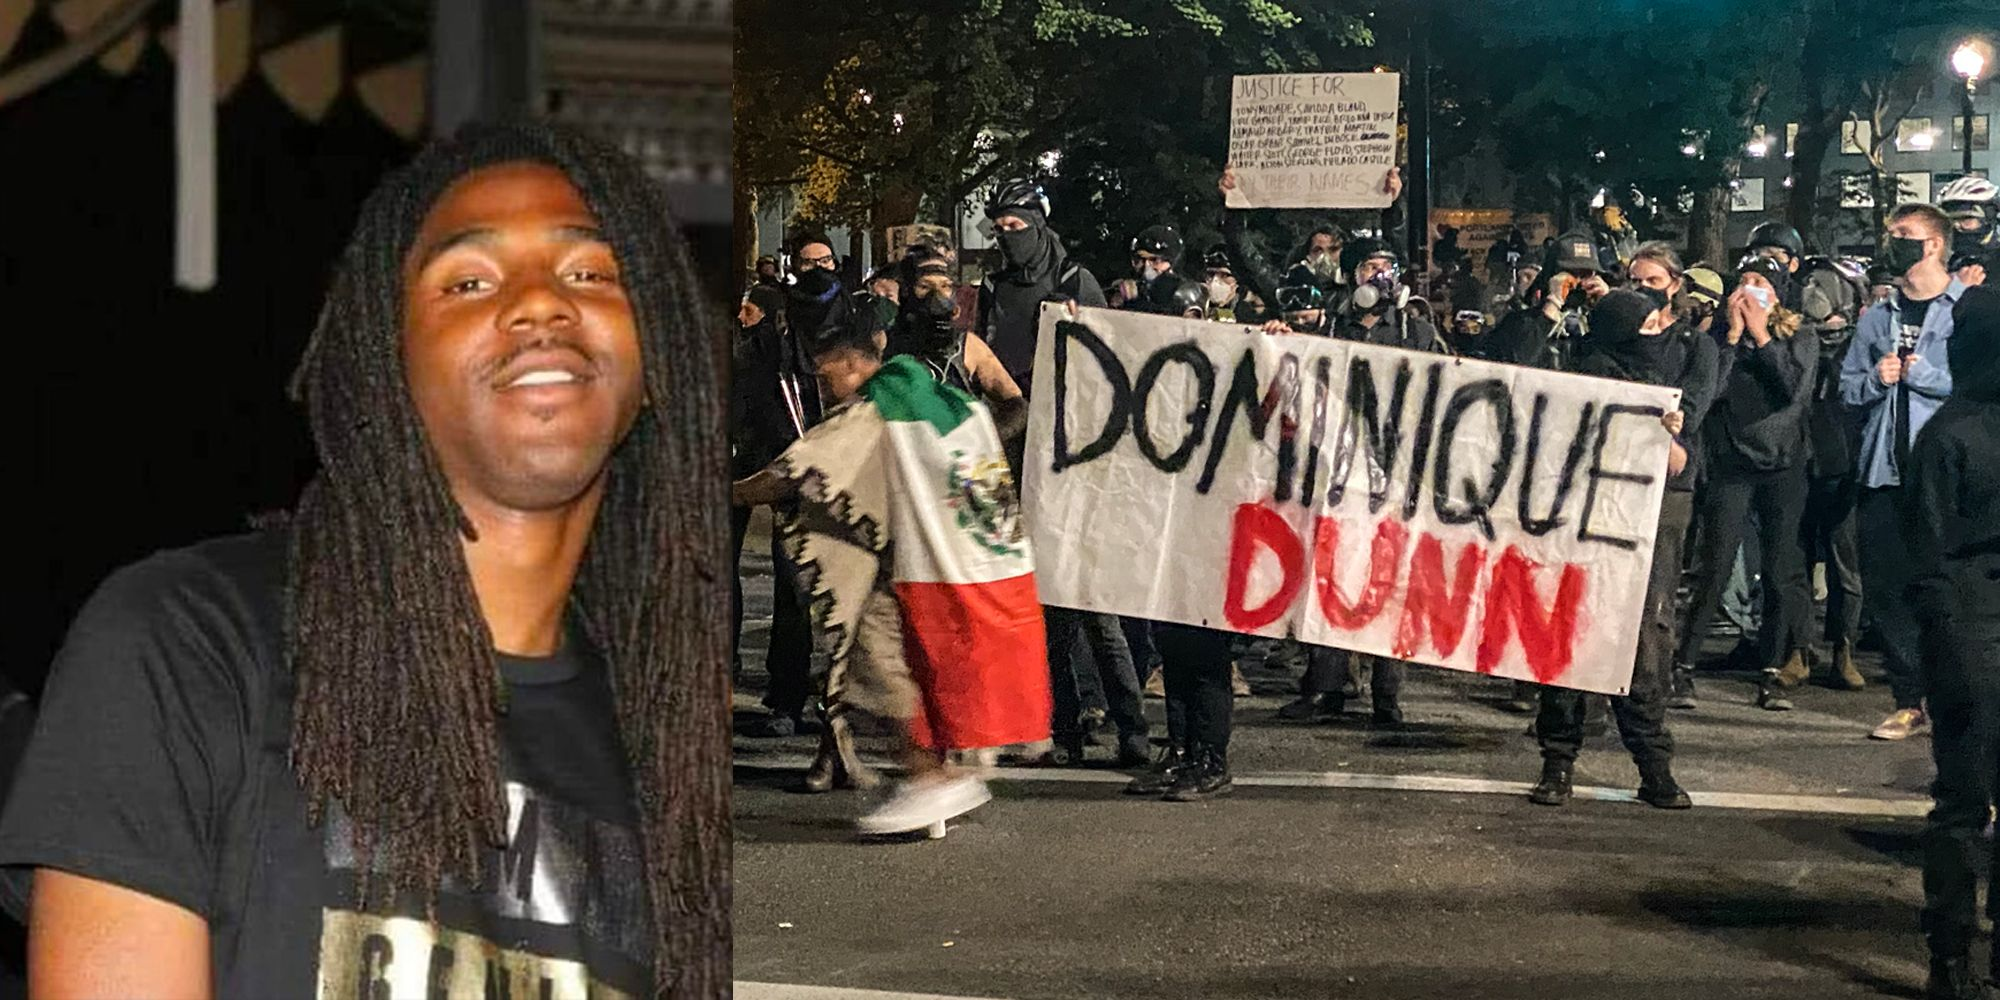 Antifa and BLM claim black shooter in Portland incident is a 'white supremacist'